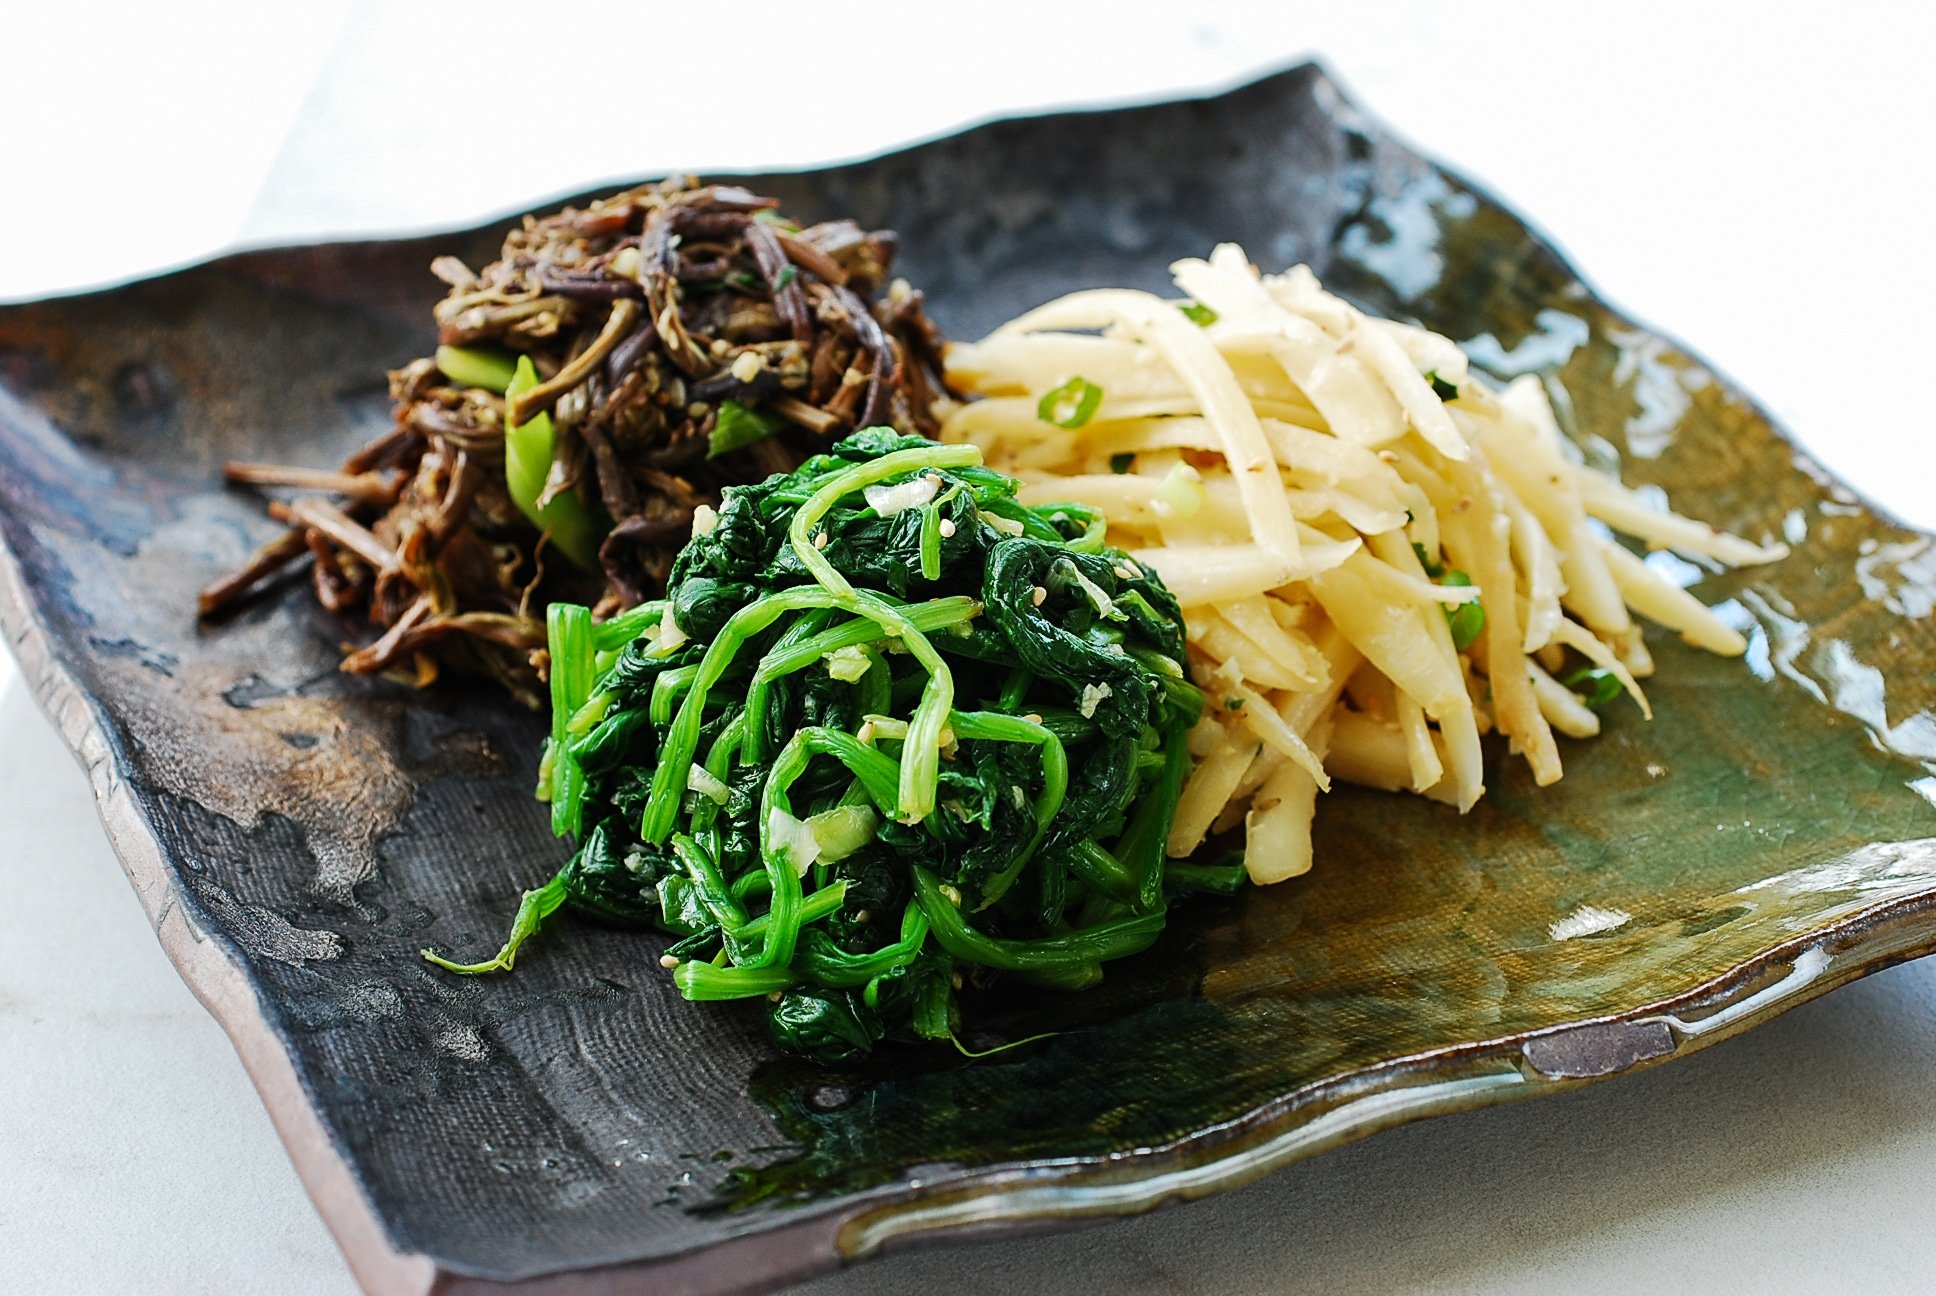 Three different color vegetable side dishes